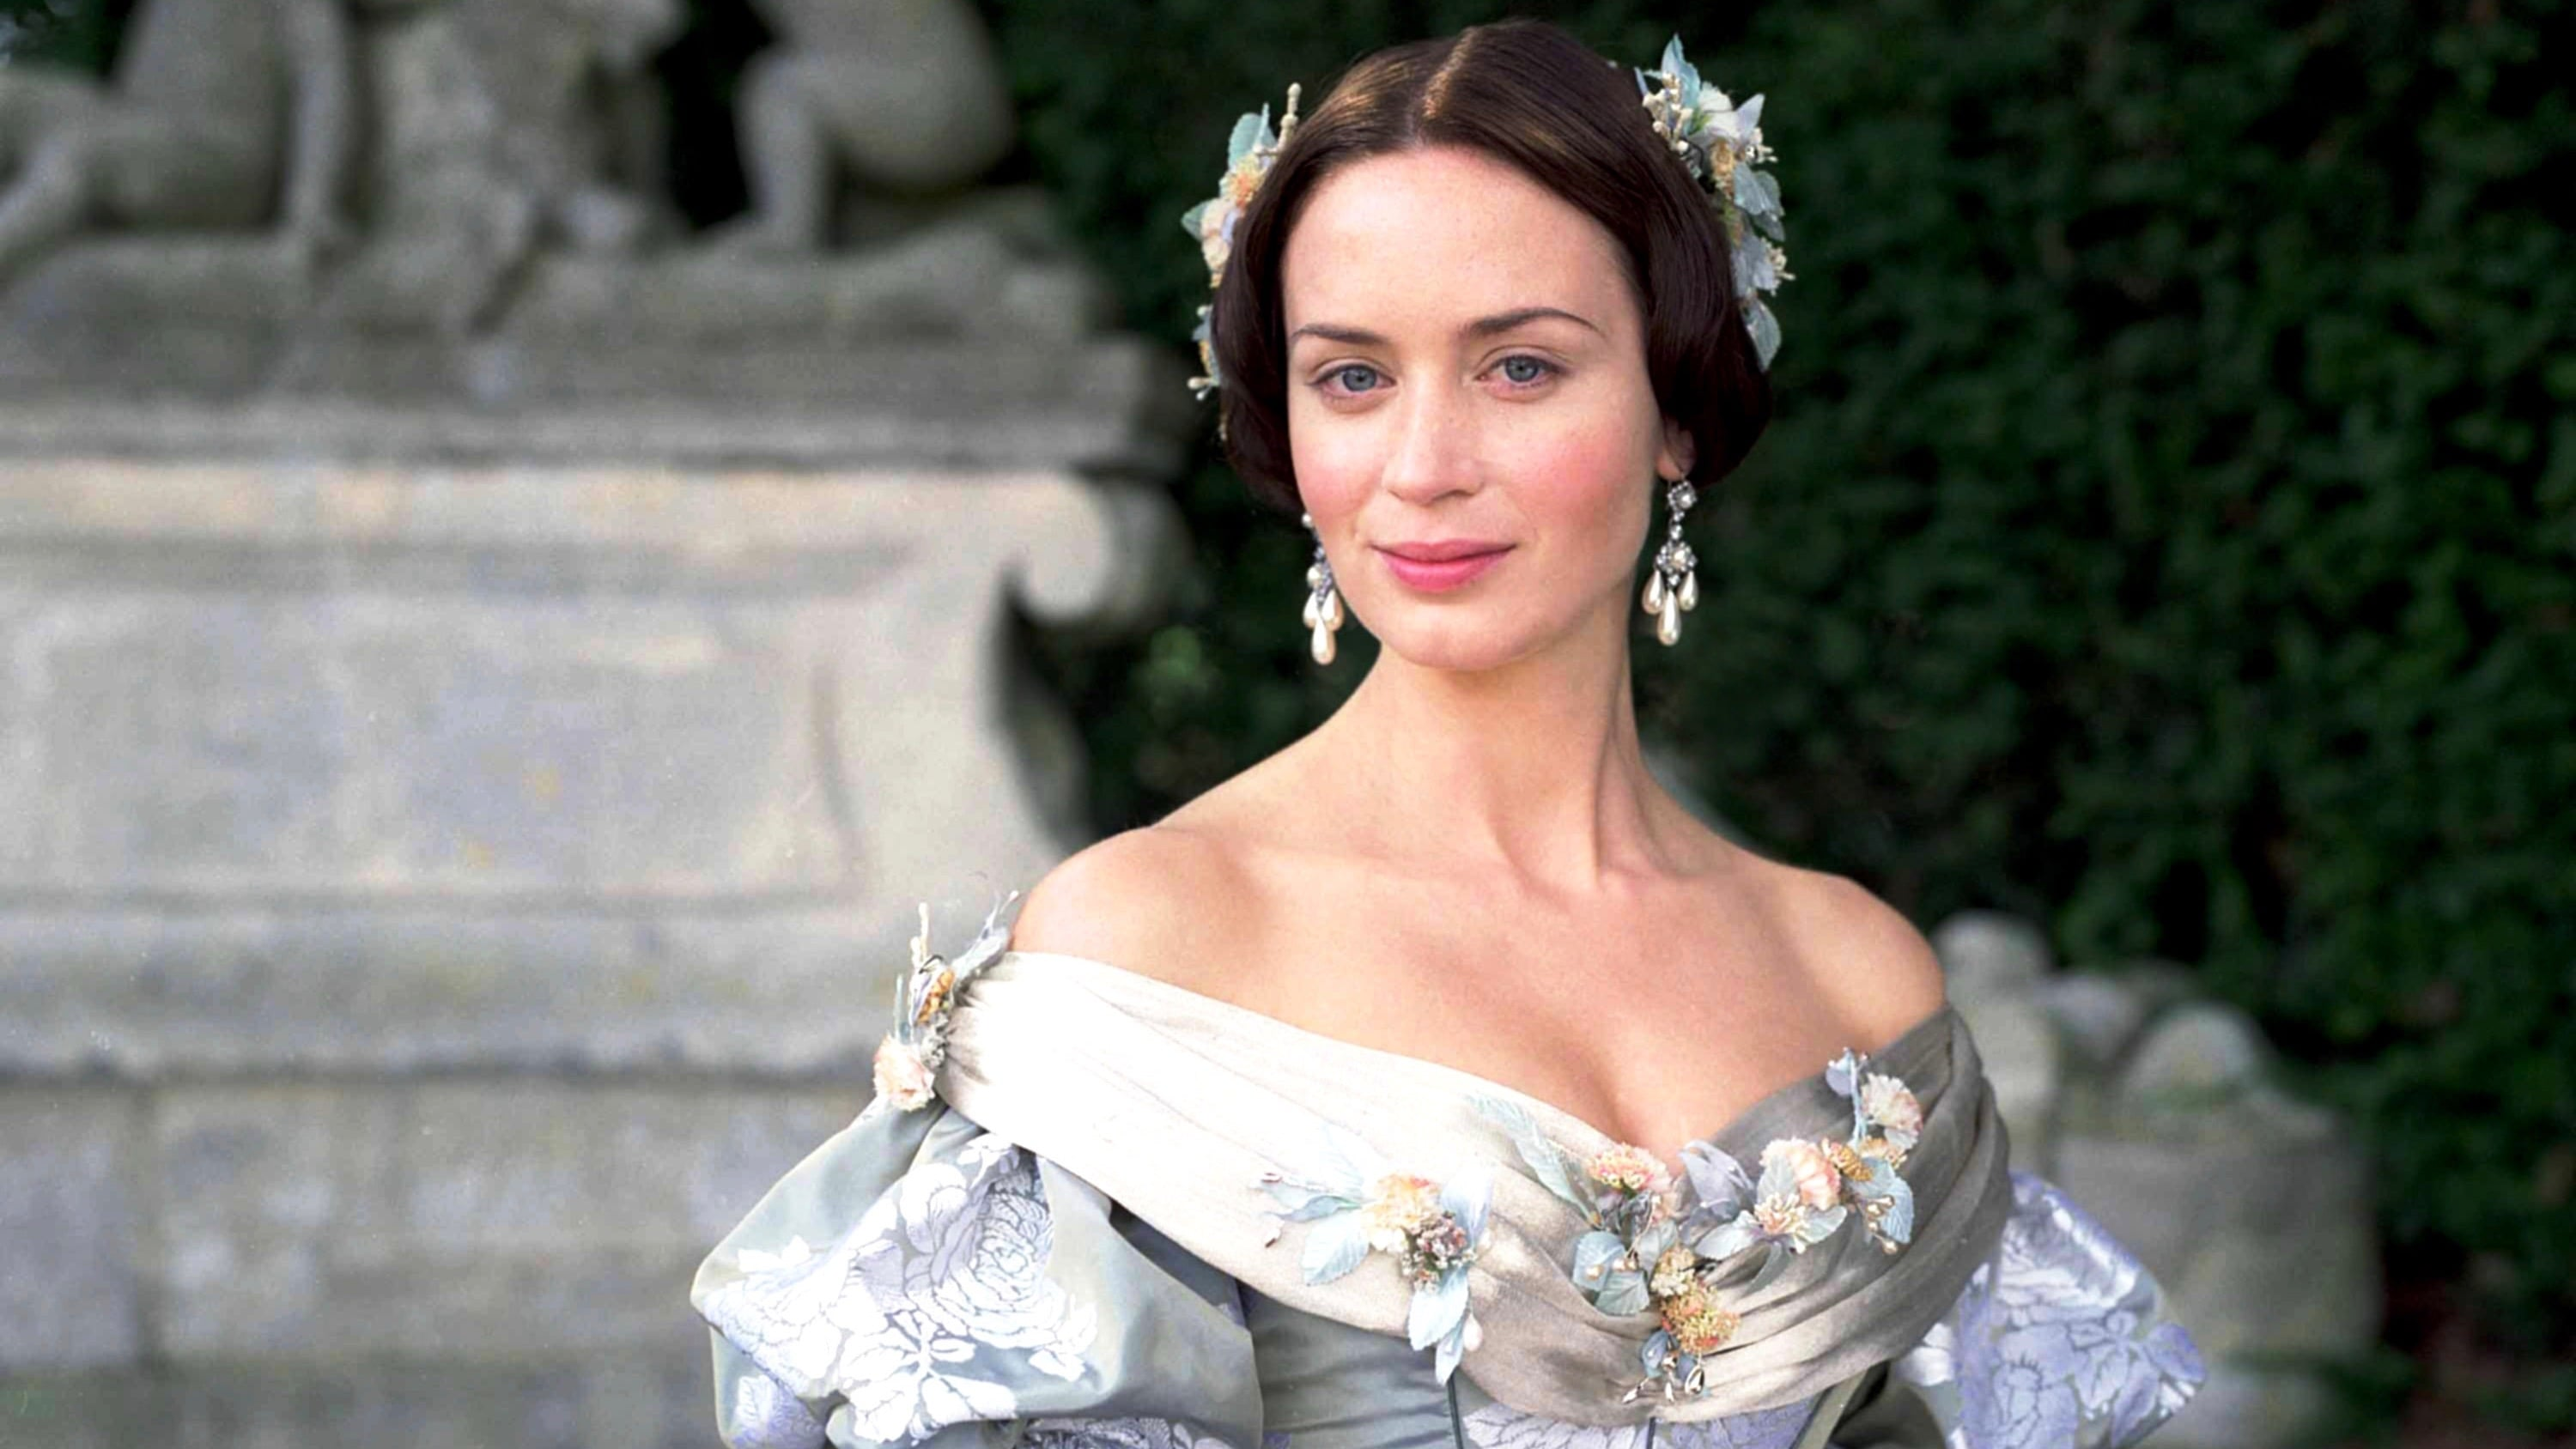 Watch The Young Victoria 2009 Full HD Movie Online for